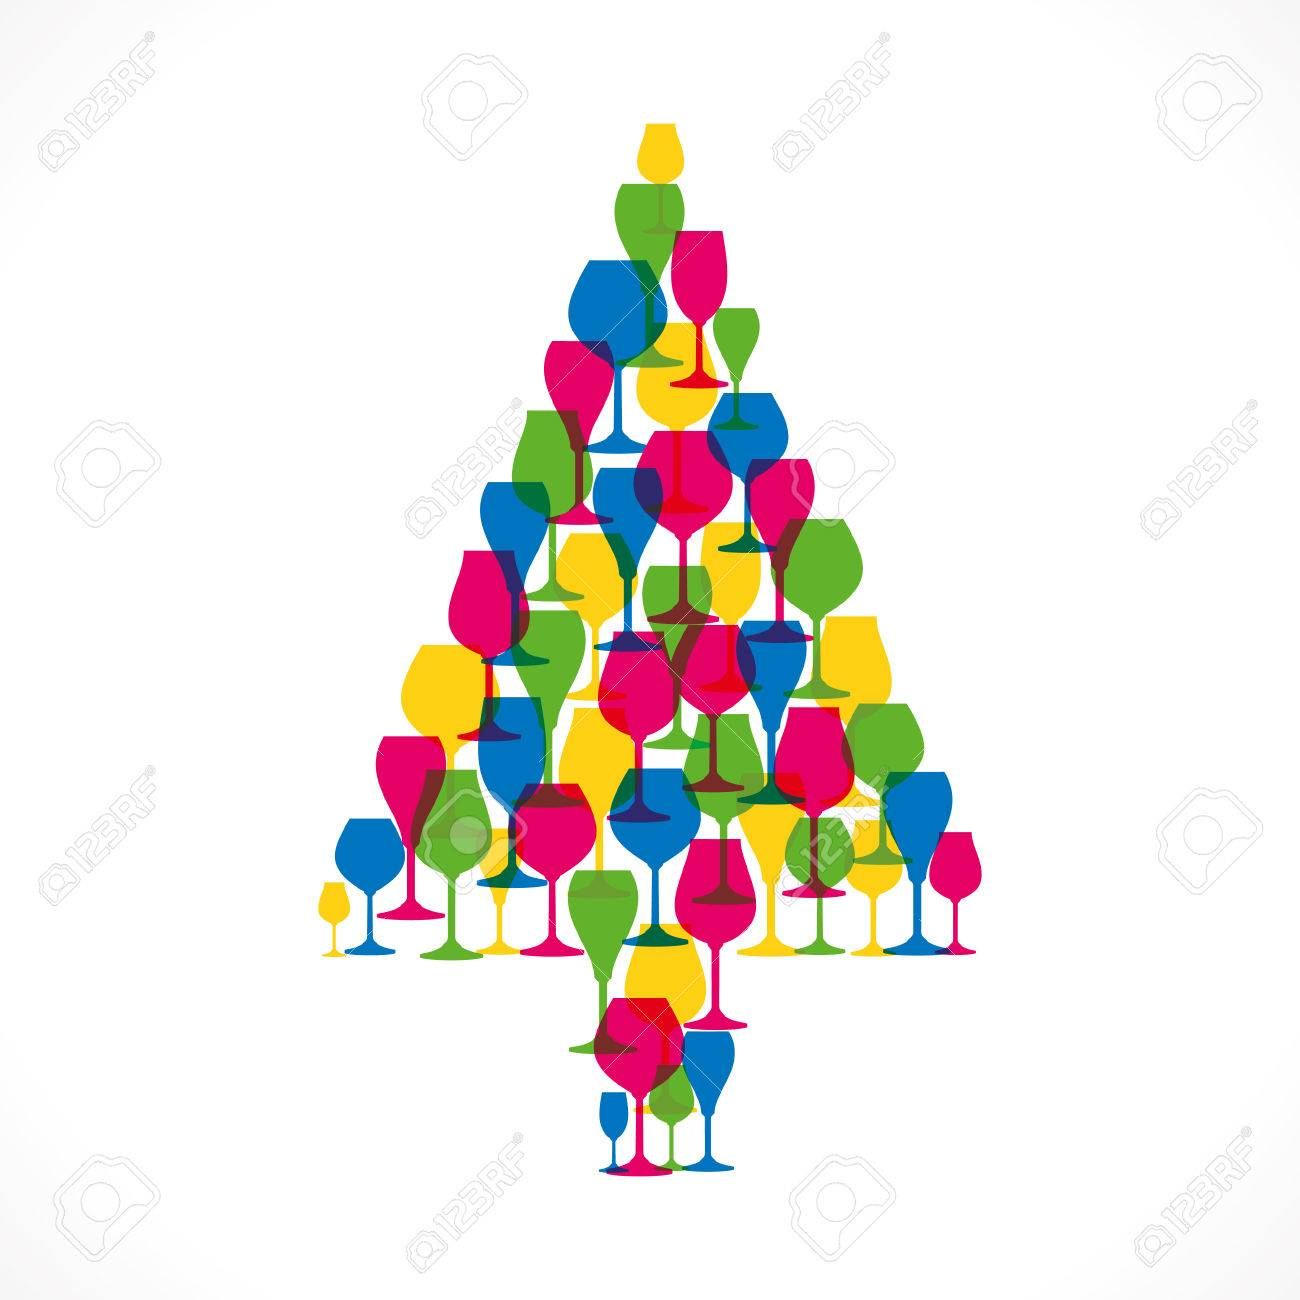 Colorful Christmas Tree Vector.Colorful Wine Glass Christmas Tree Vector